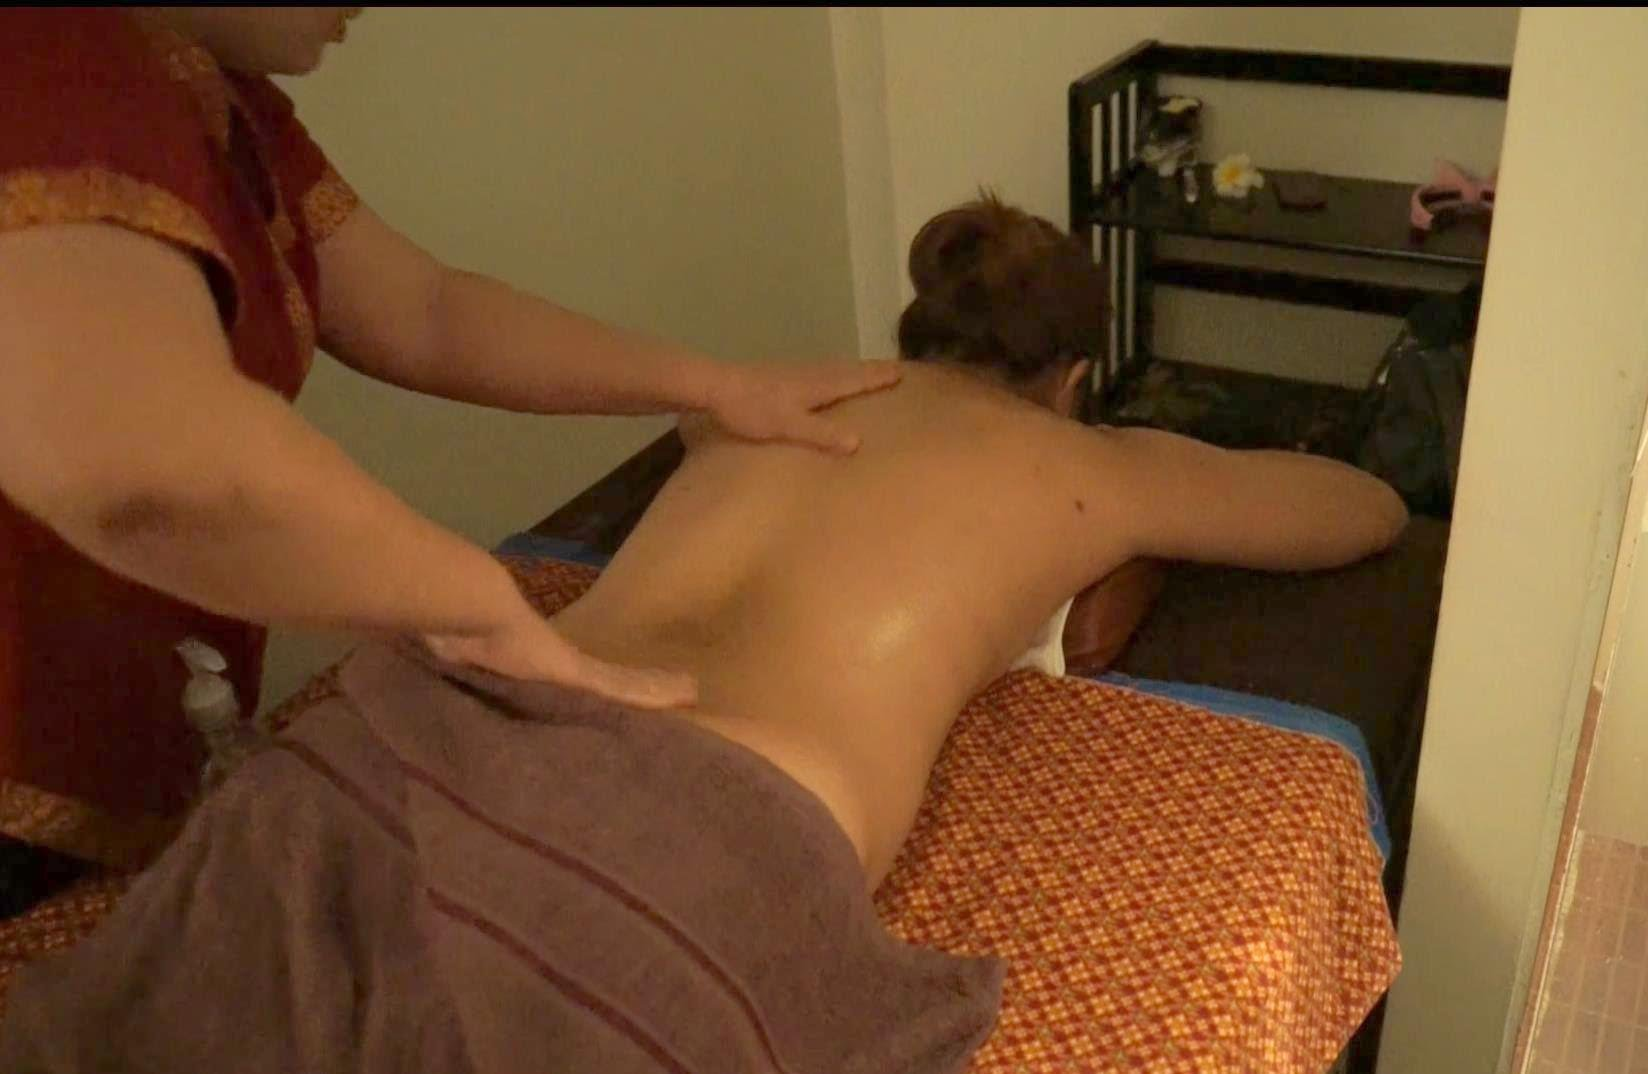 Thai Body Massage Bangkok – Back II ✔ in Thailand